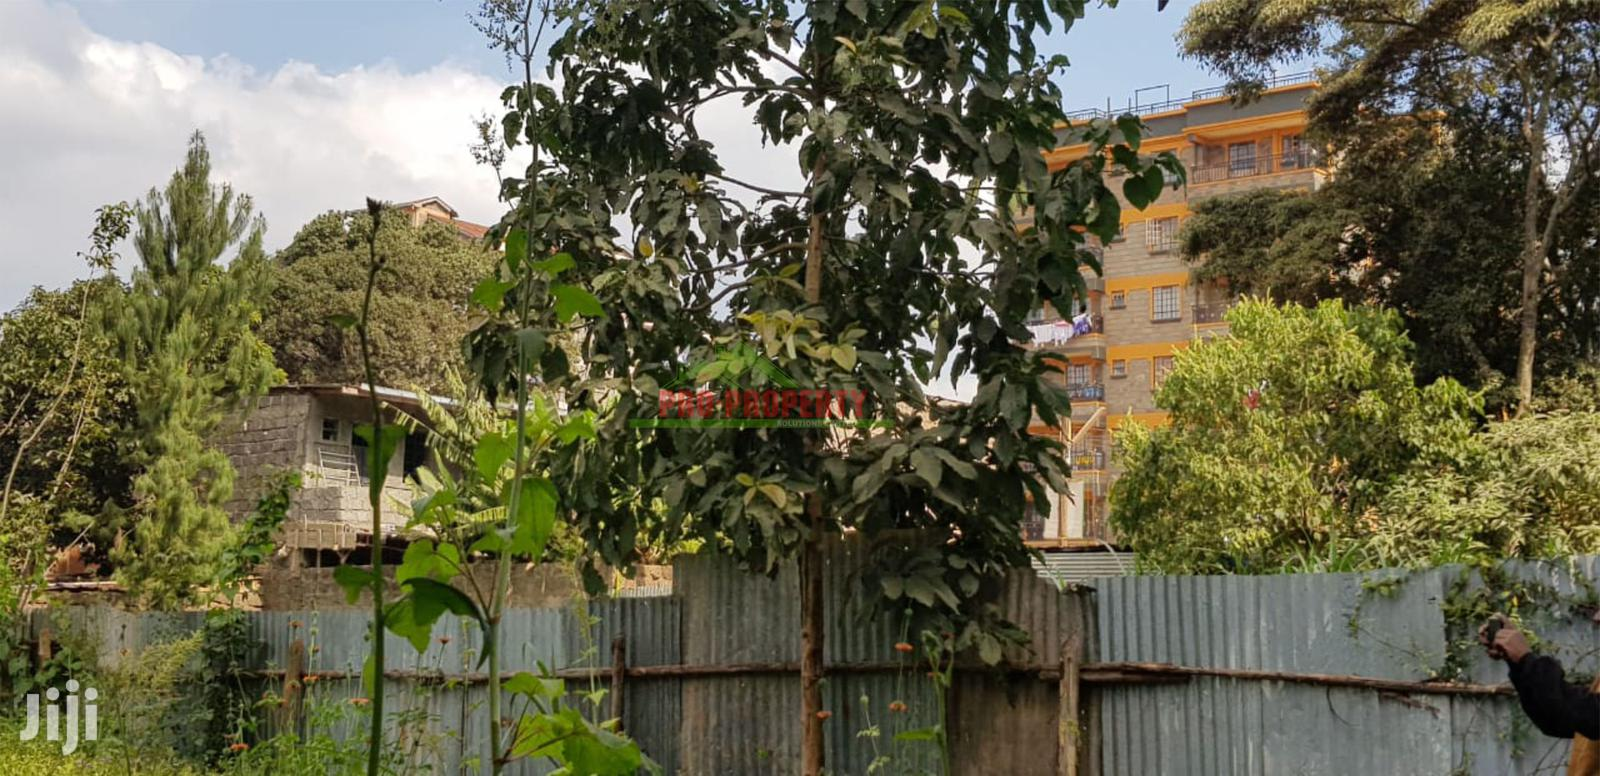 1/8 Acre for Sale in Kinoo Muthiga. | Land & Plots For Sale for sale in Kinoo, Kiambu, Kenya